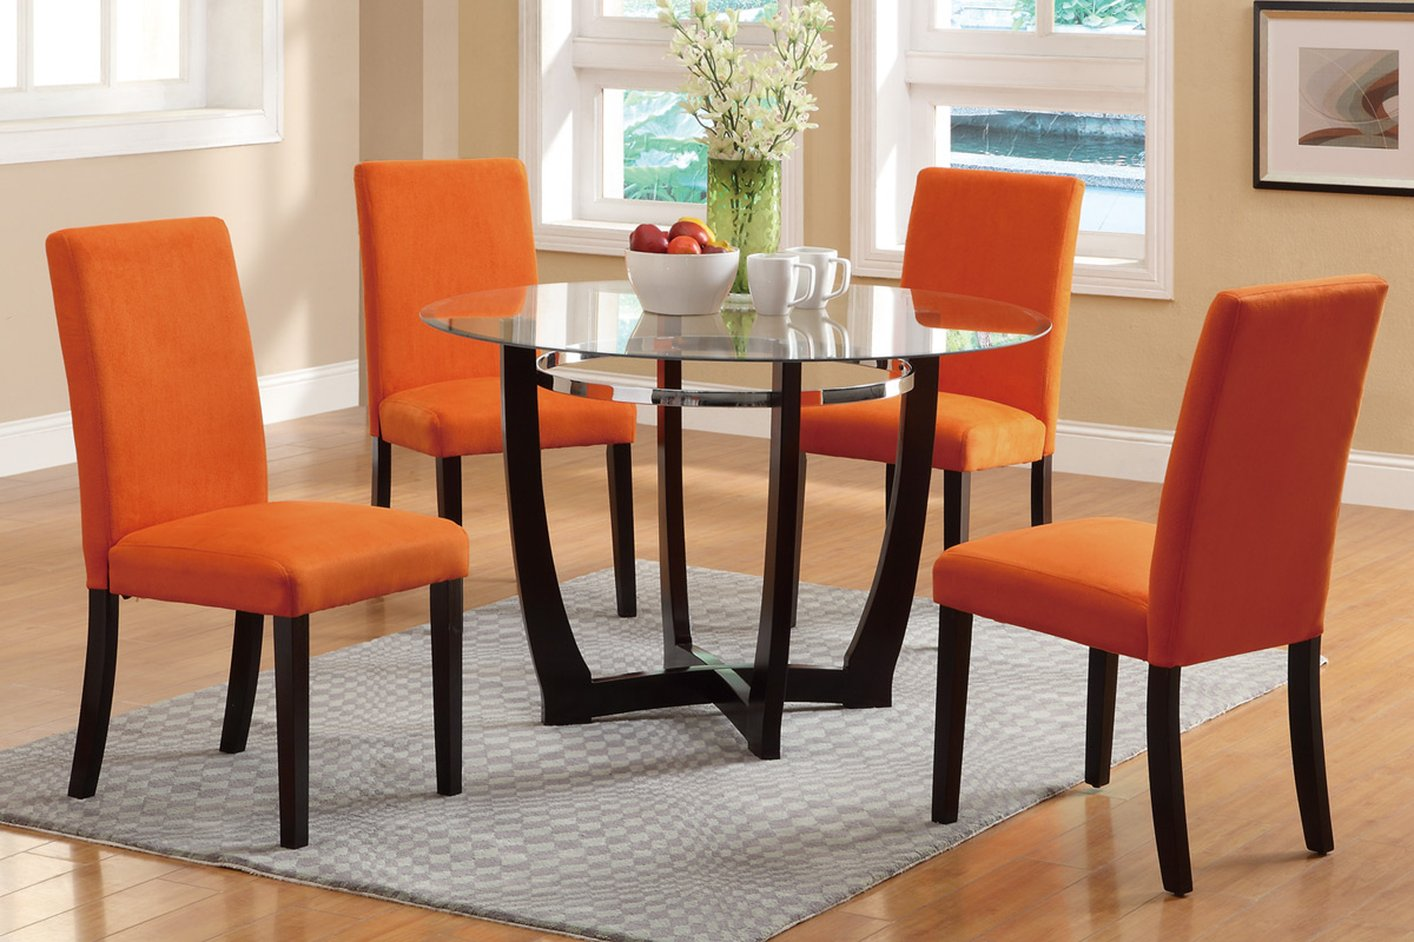 glass dining room set. Brown Glass Dining Table Room Set S